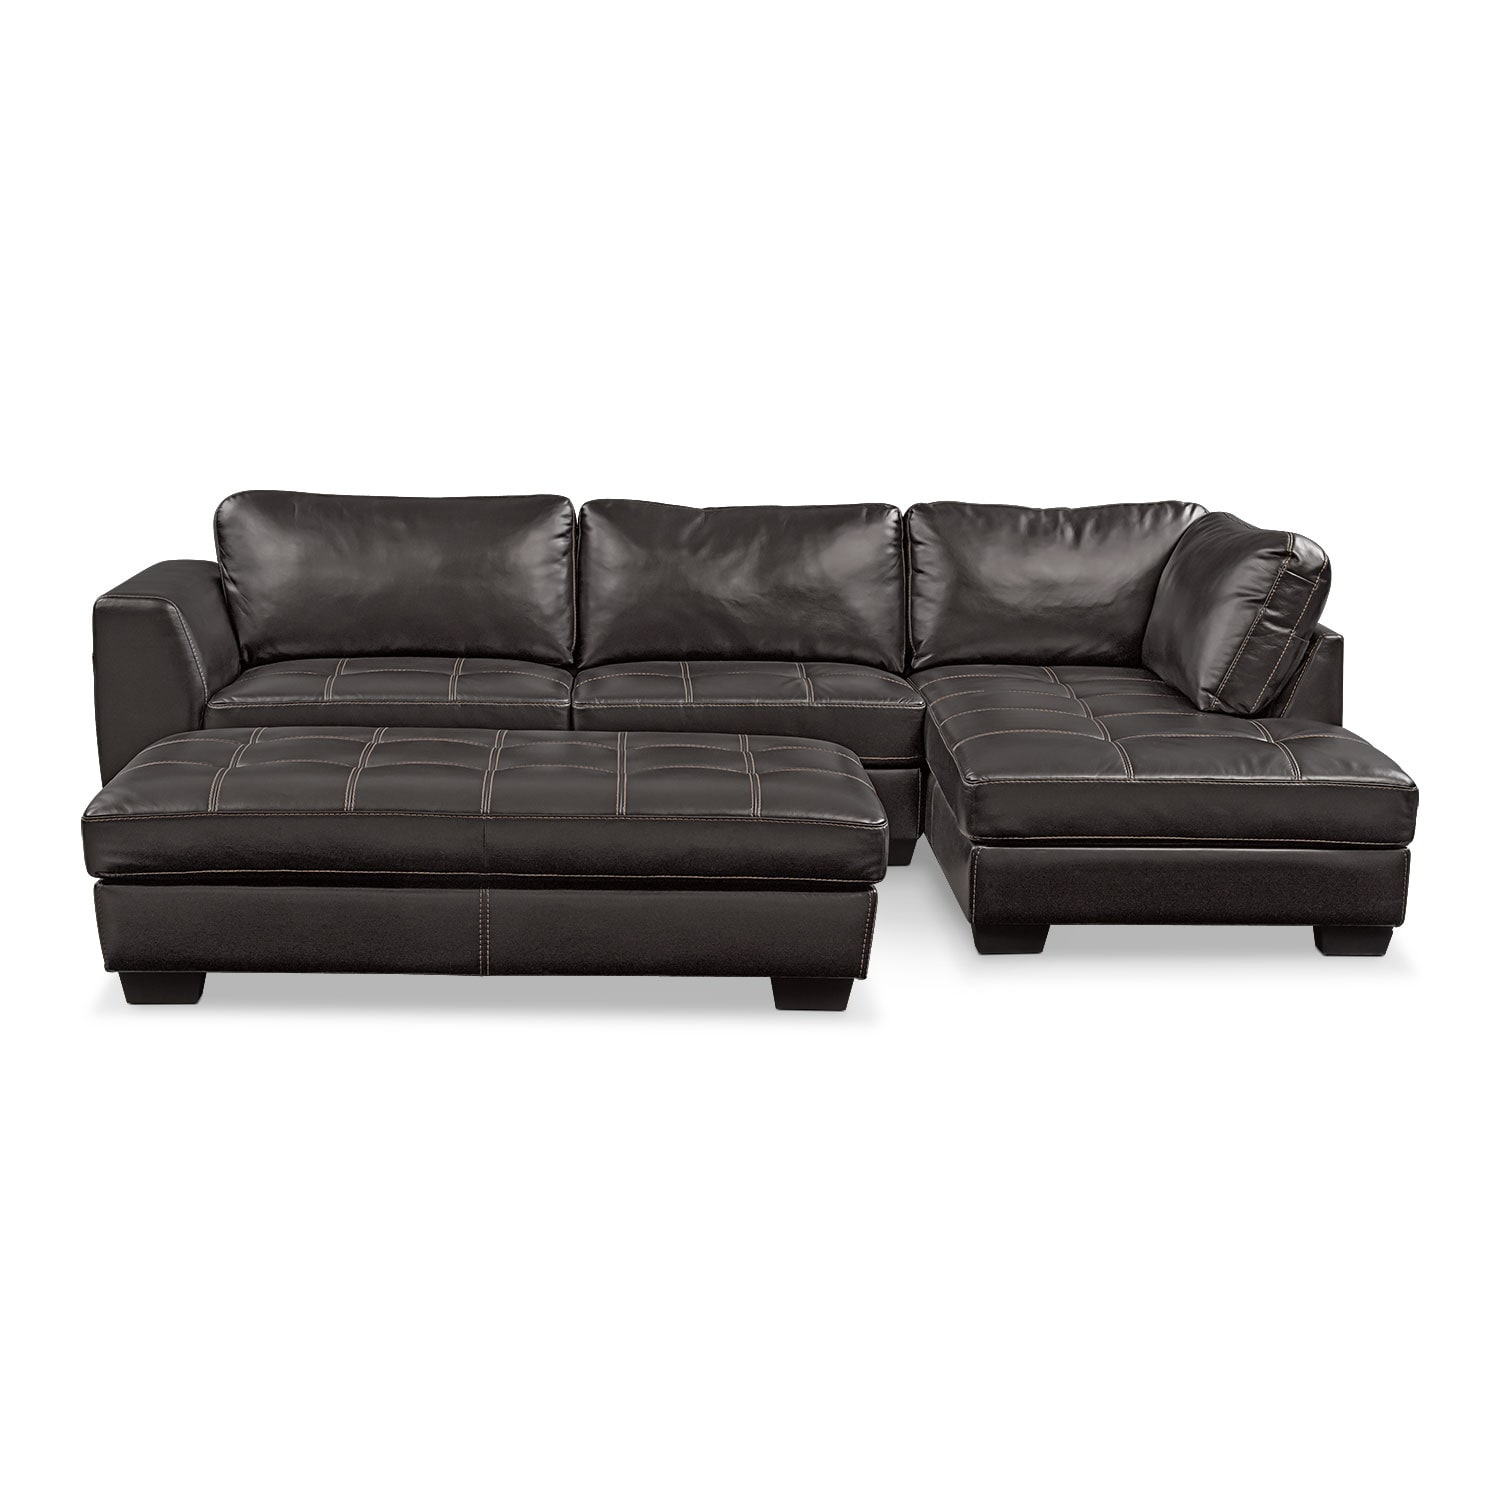 Santana 2 Piece Sectional With Chaise And Tail Ottoman Set